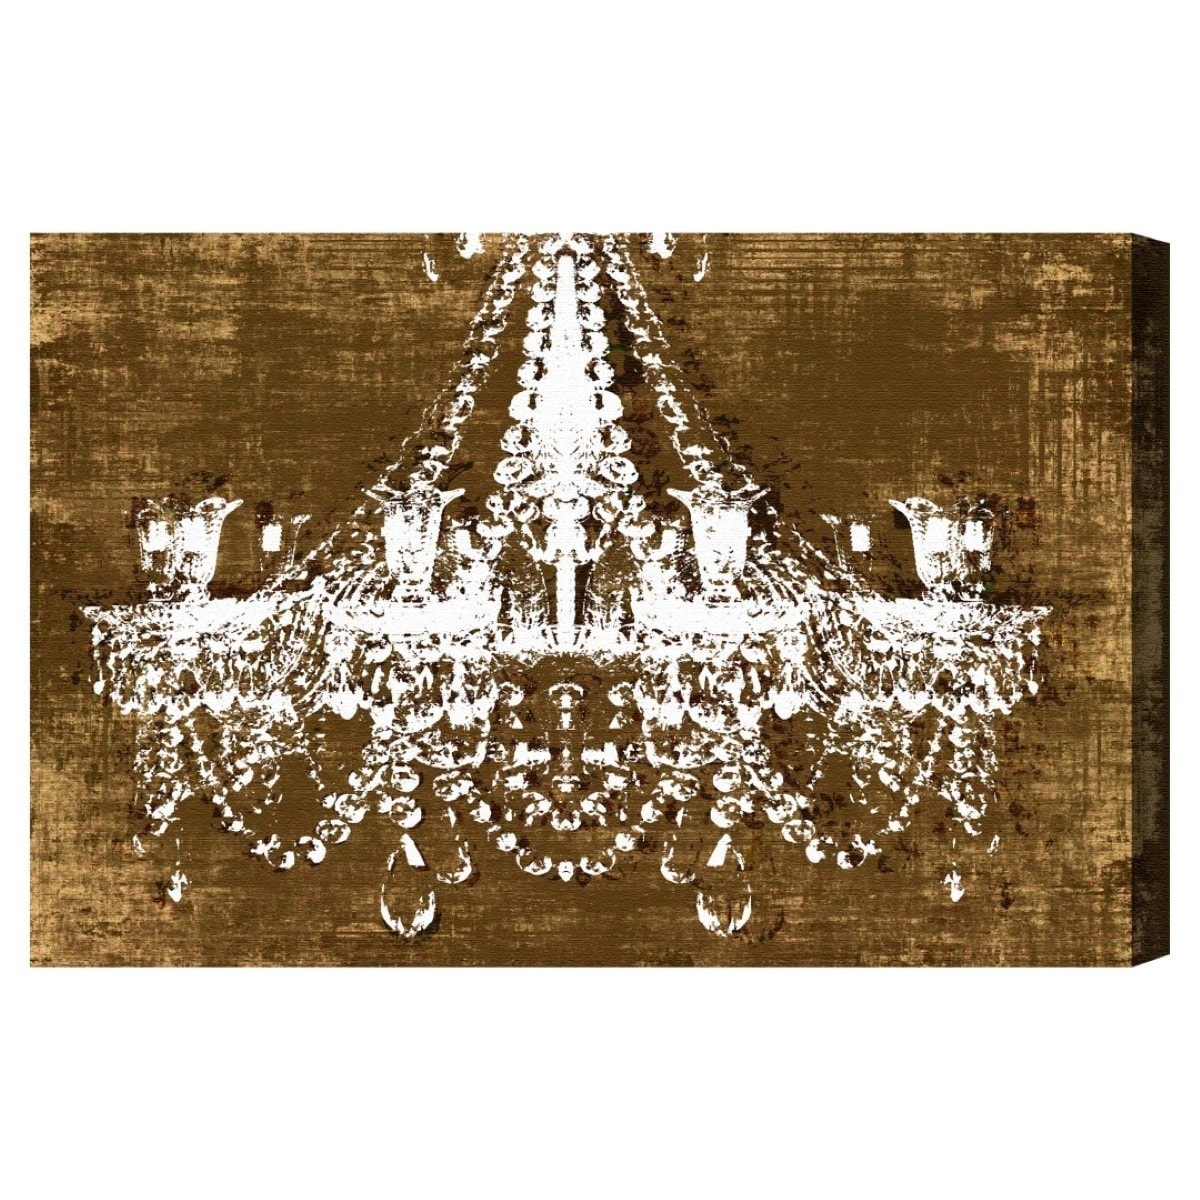 chandelier home gal garden overstock crushed product shipping today free art oliver canvas velvet